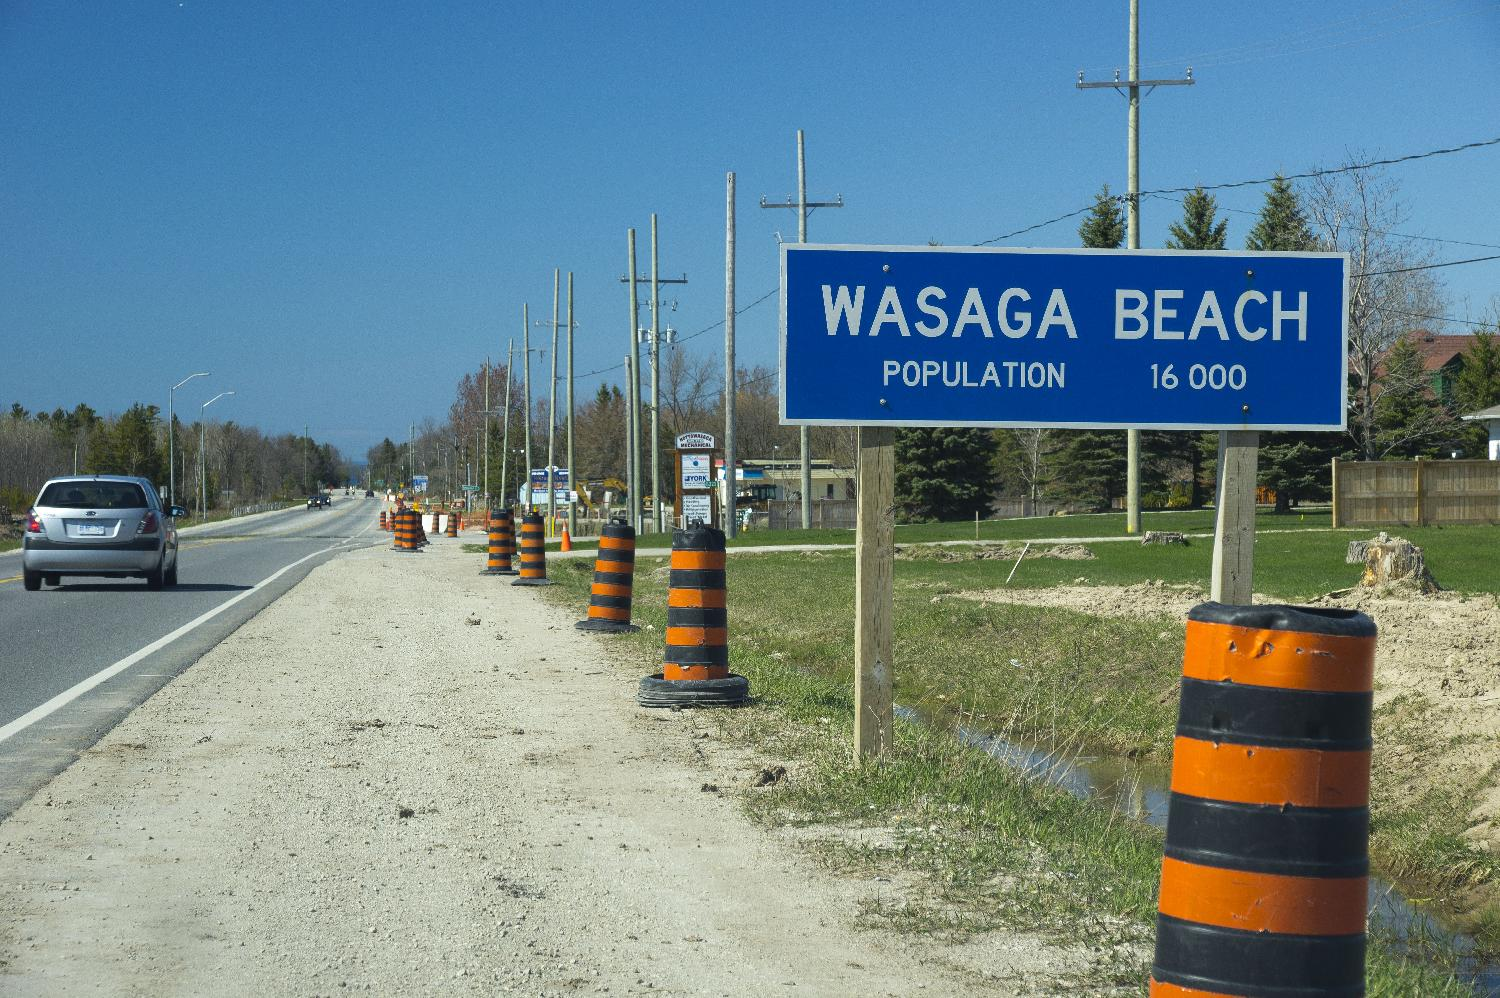 wasaga beach personals Black personals - this dating site is the best way to get experience in relations sign up now and get a free and safe online dating.